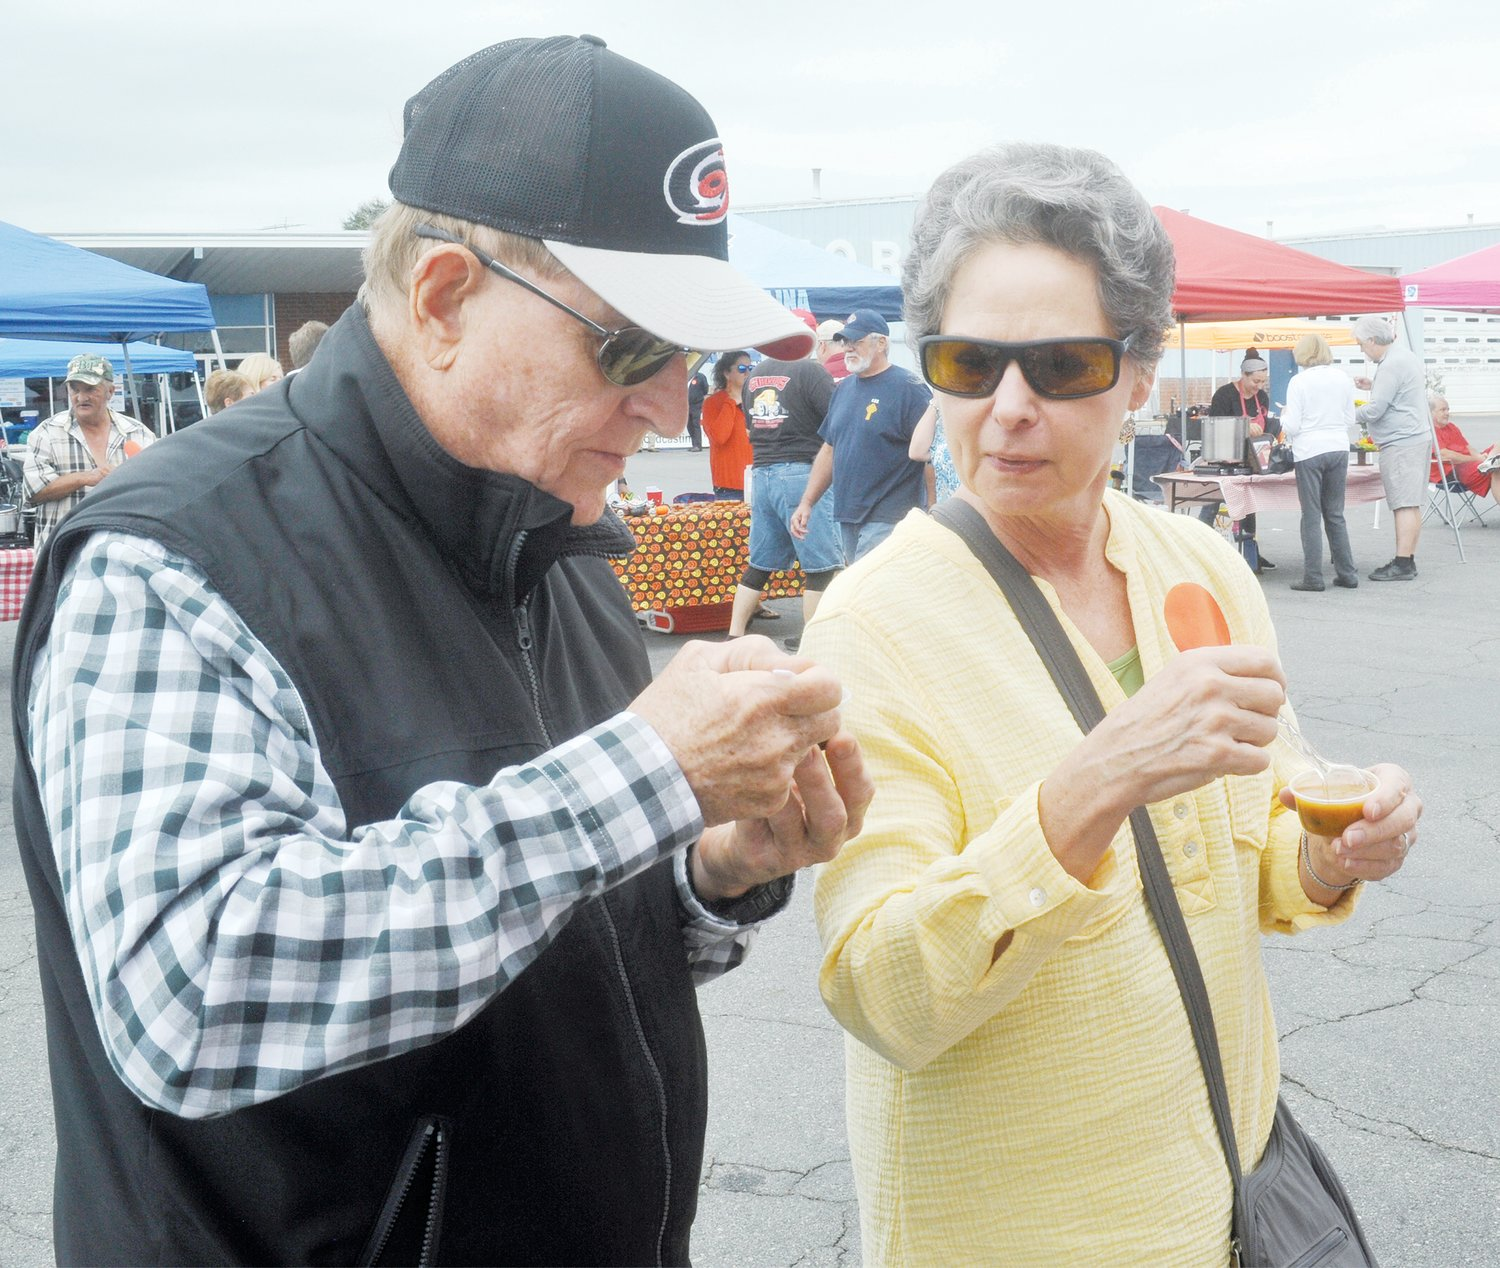 Gerald and Brenda Featherstone said it was their first time at the Chatham Chili Challenge. They said the chili reminded them of when they were growing up.